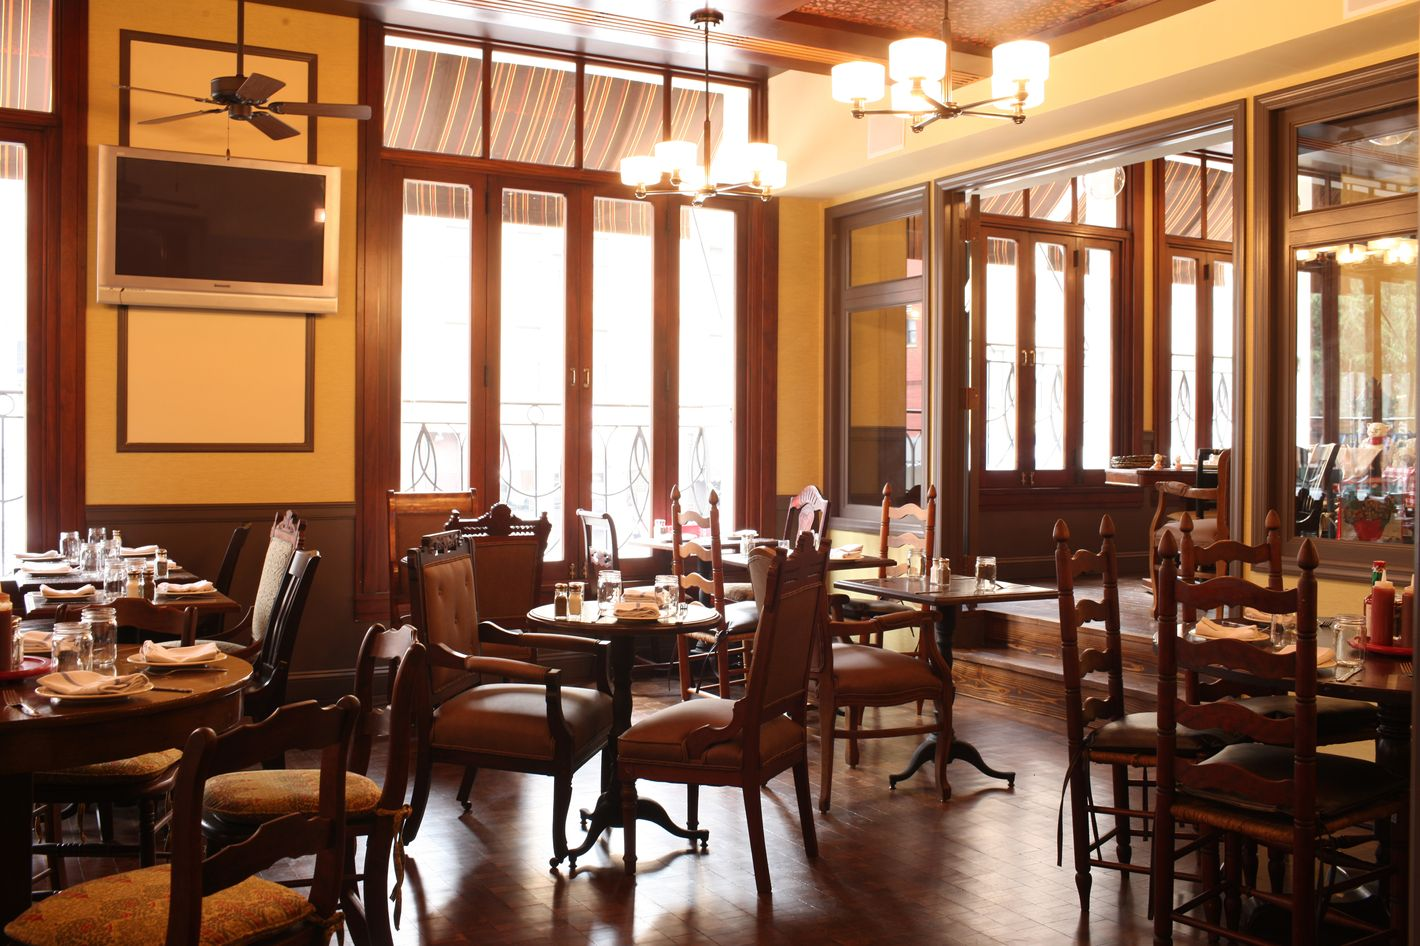 http://pixel.nymag.com/imgs/daily/grub/2011/07/07/07_nellys1.jpg